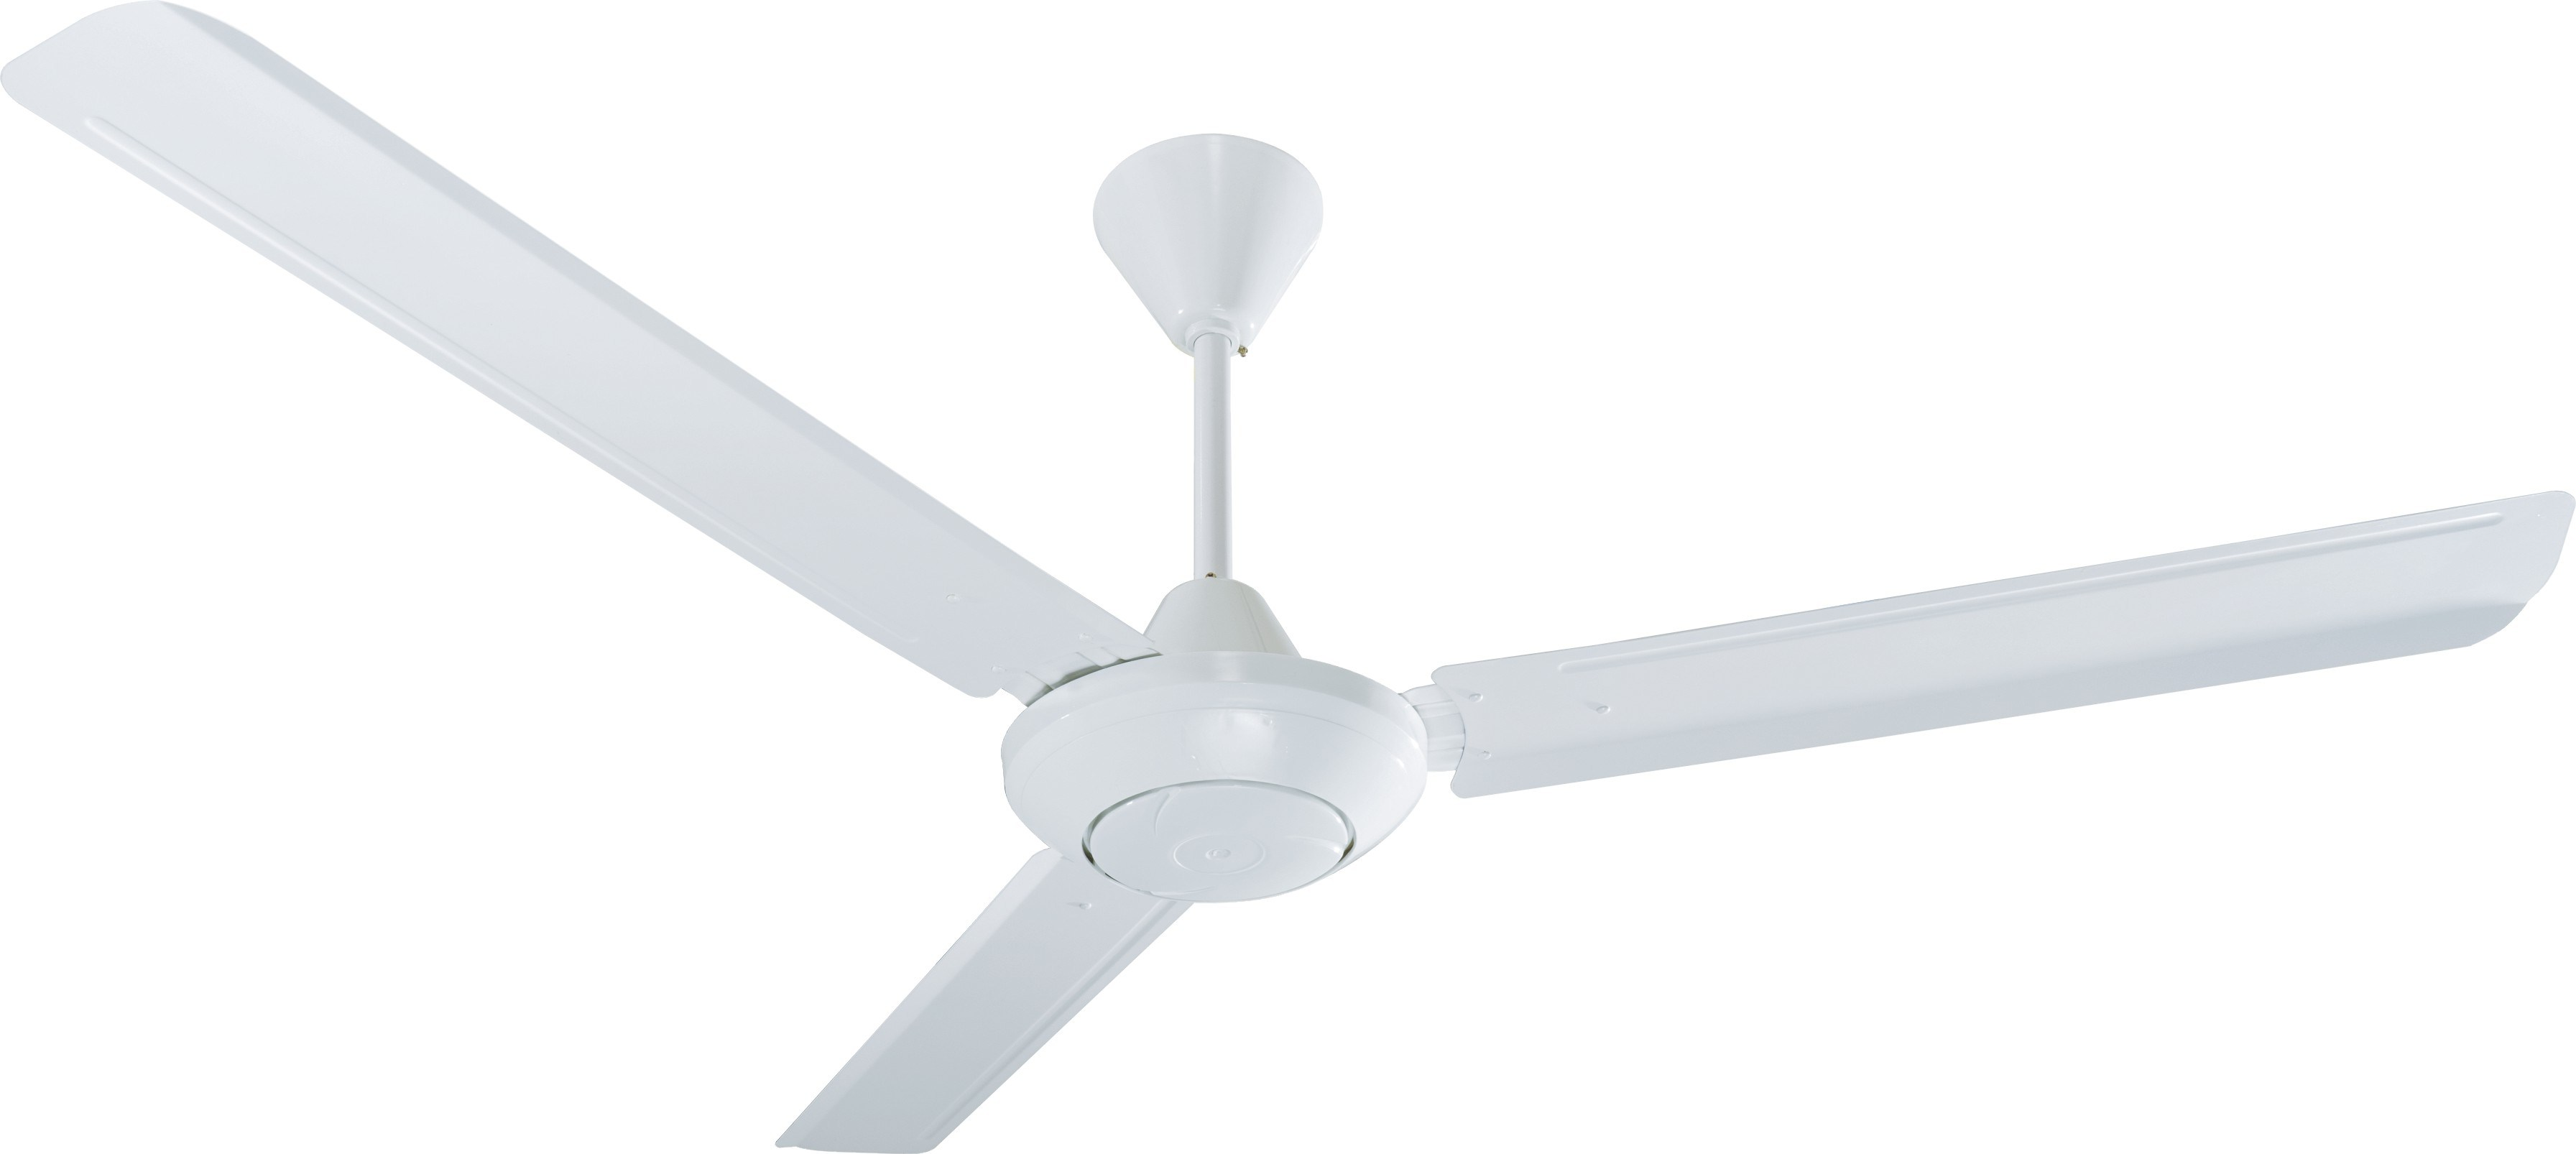 China 1500mm 60 Inch Industrial Ceiling Fan With Big Power Heavy Copper Motor Cb Gcc To Dubai Africa Malaysia China Ceiling Fan And Malaysia Fan Price